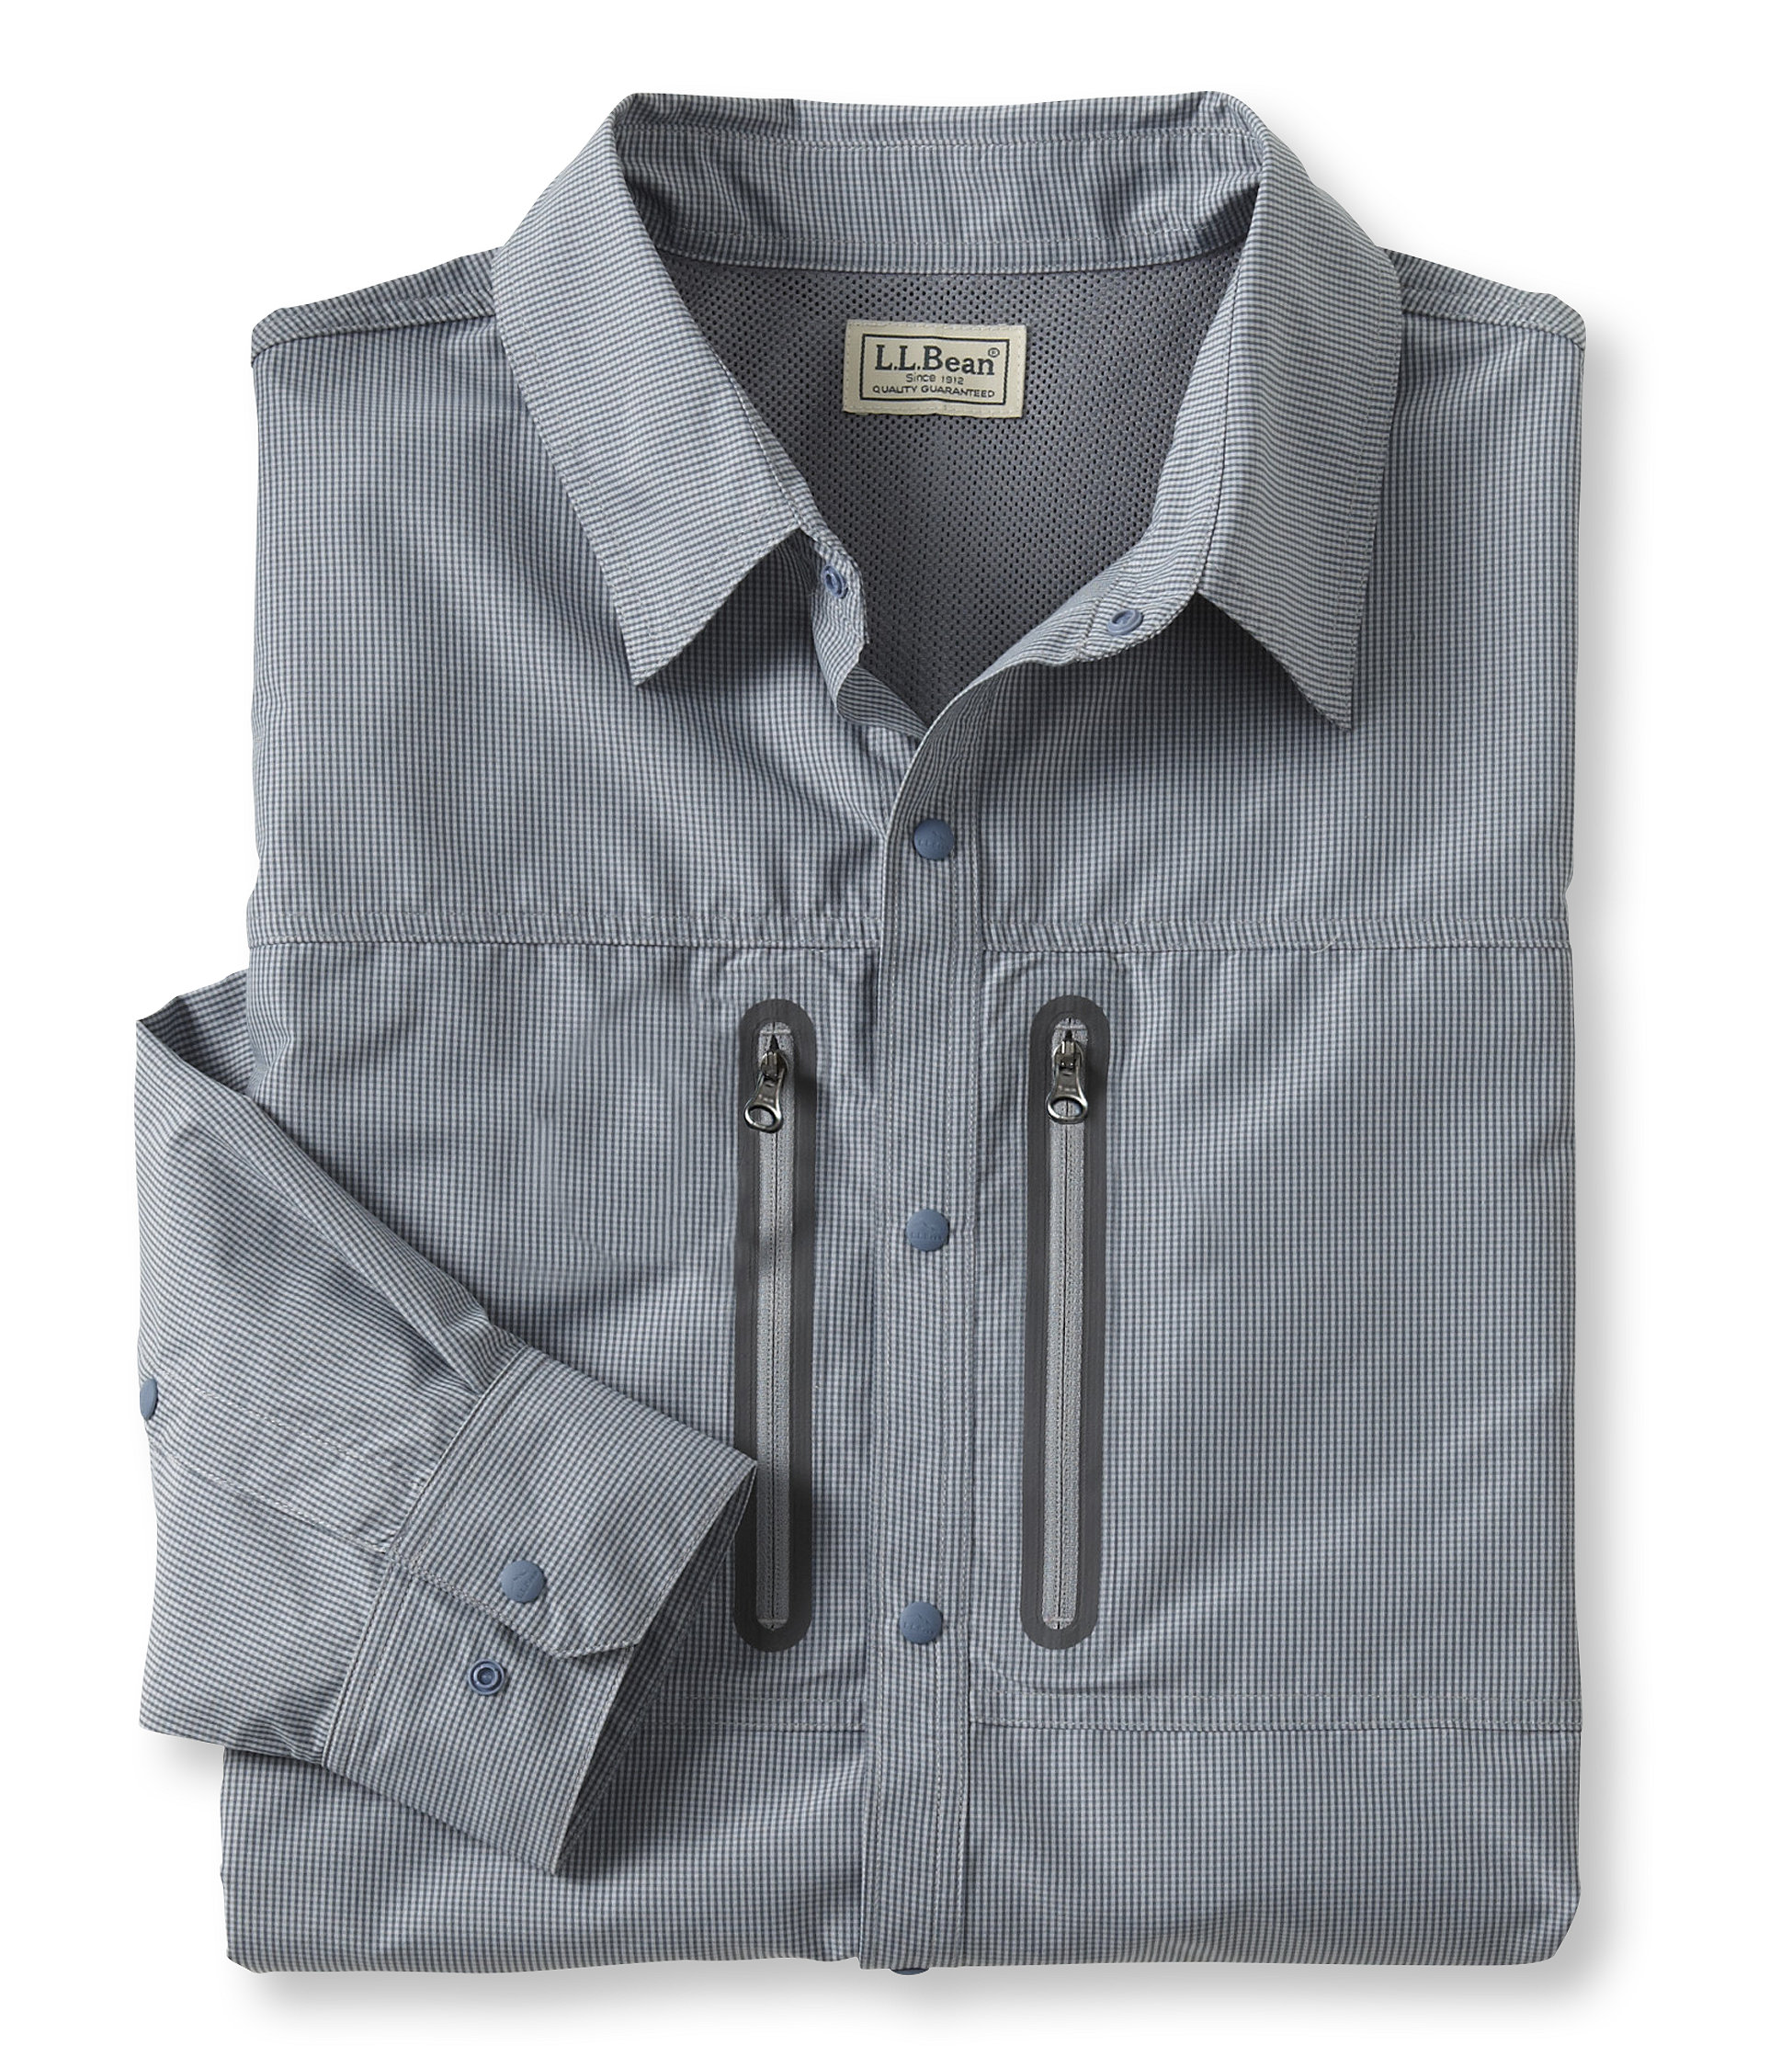 L.L.Bean Shademaker Shirt